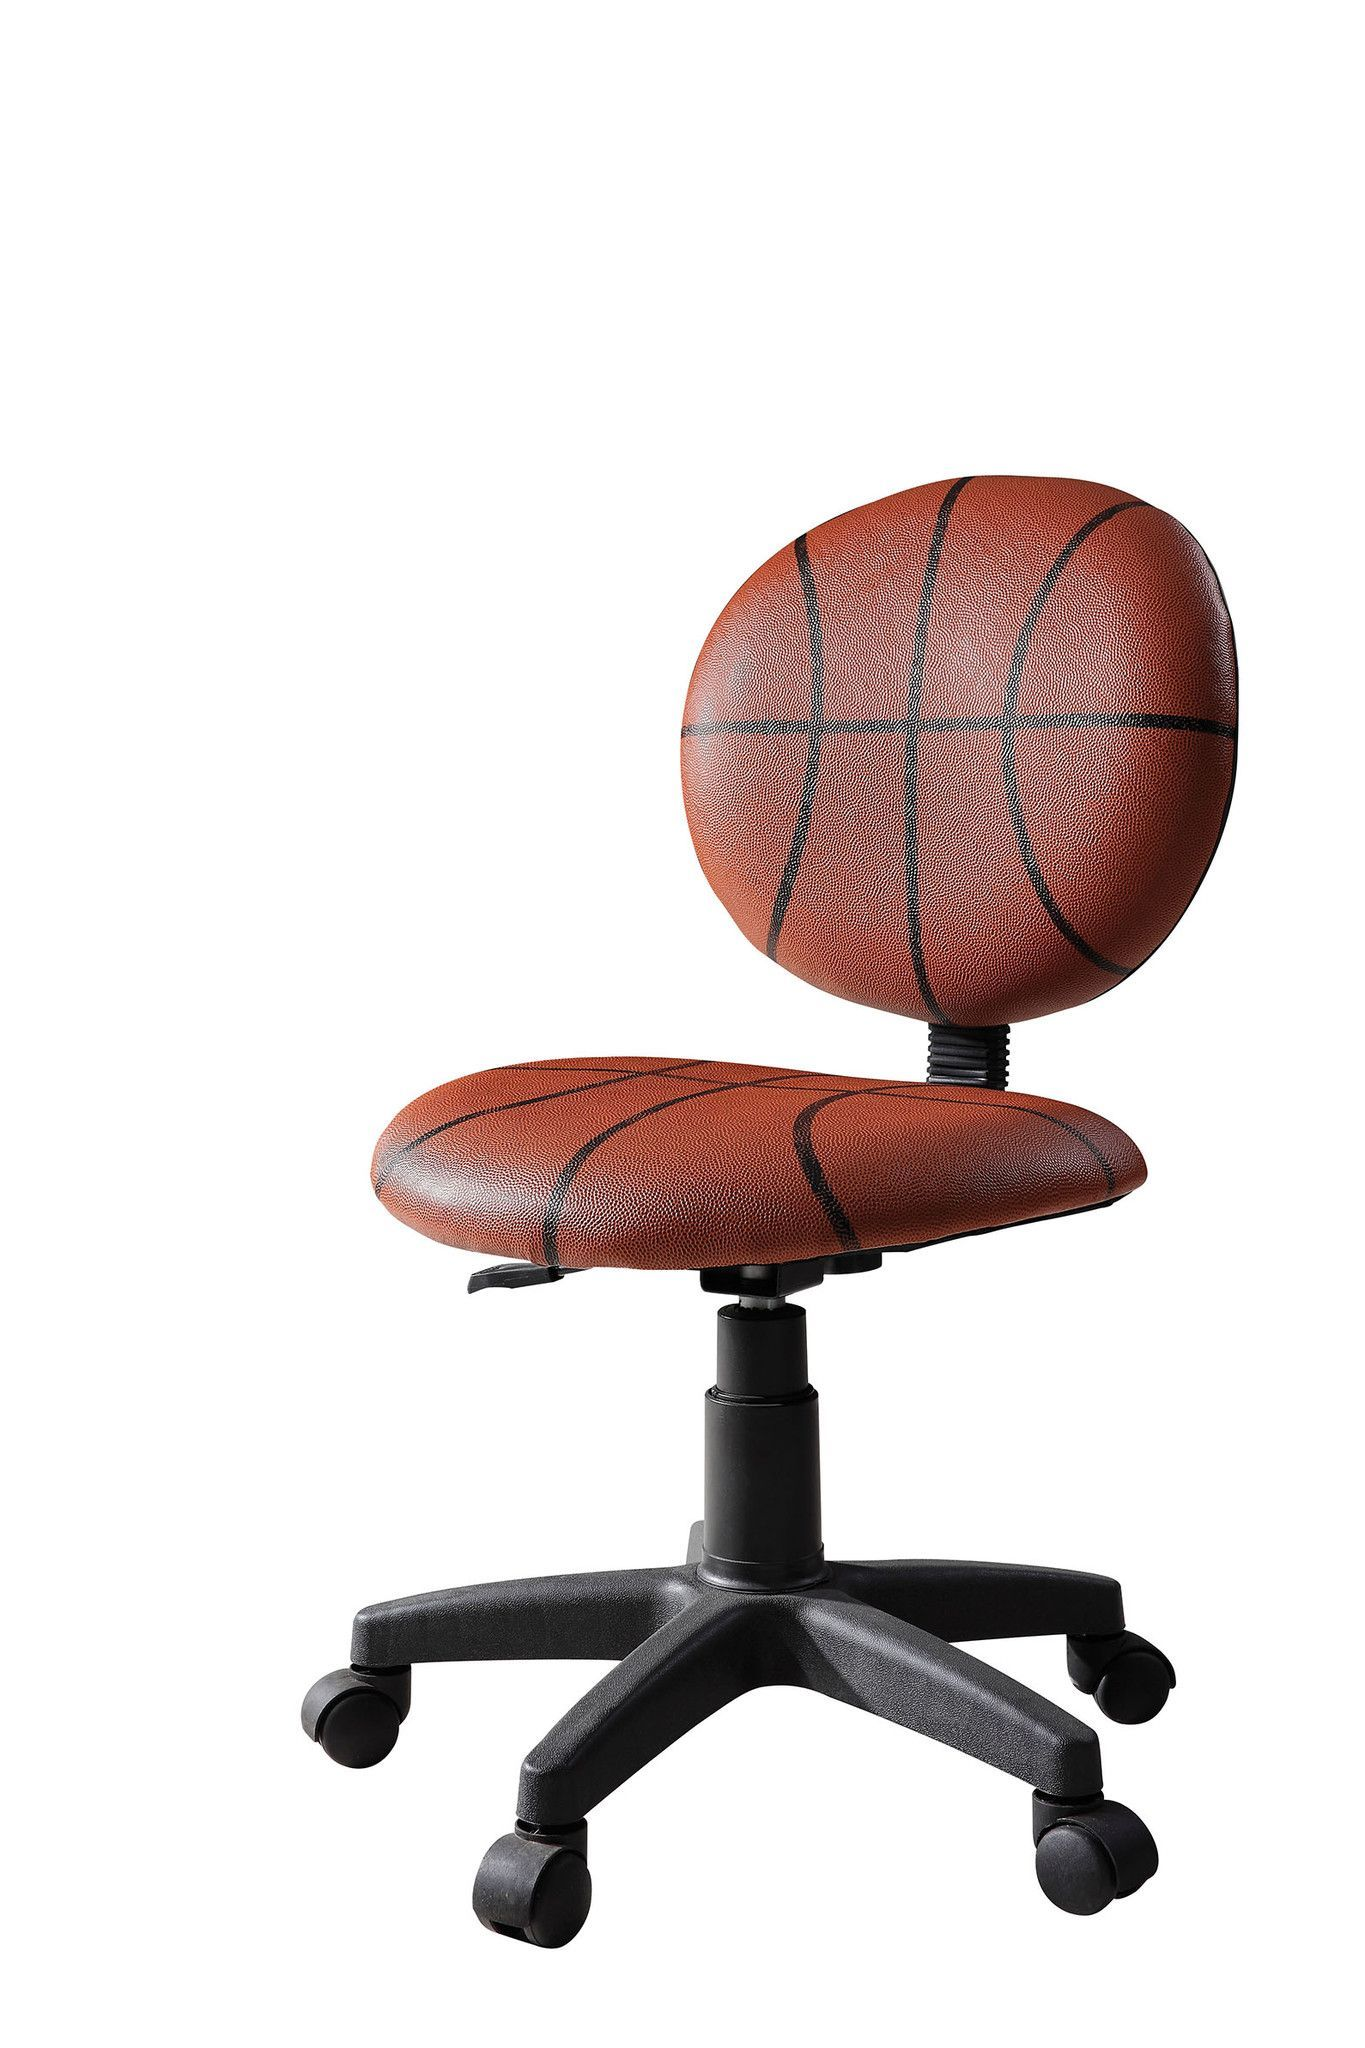 Basketball Chairs Basketball Office Chair W P2 Lizzy Bedroom Chair Office